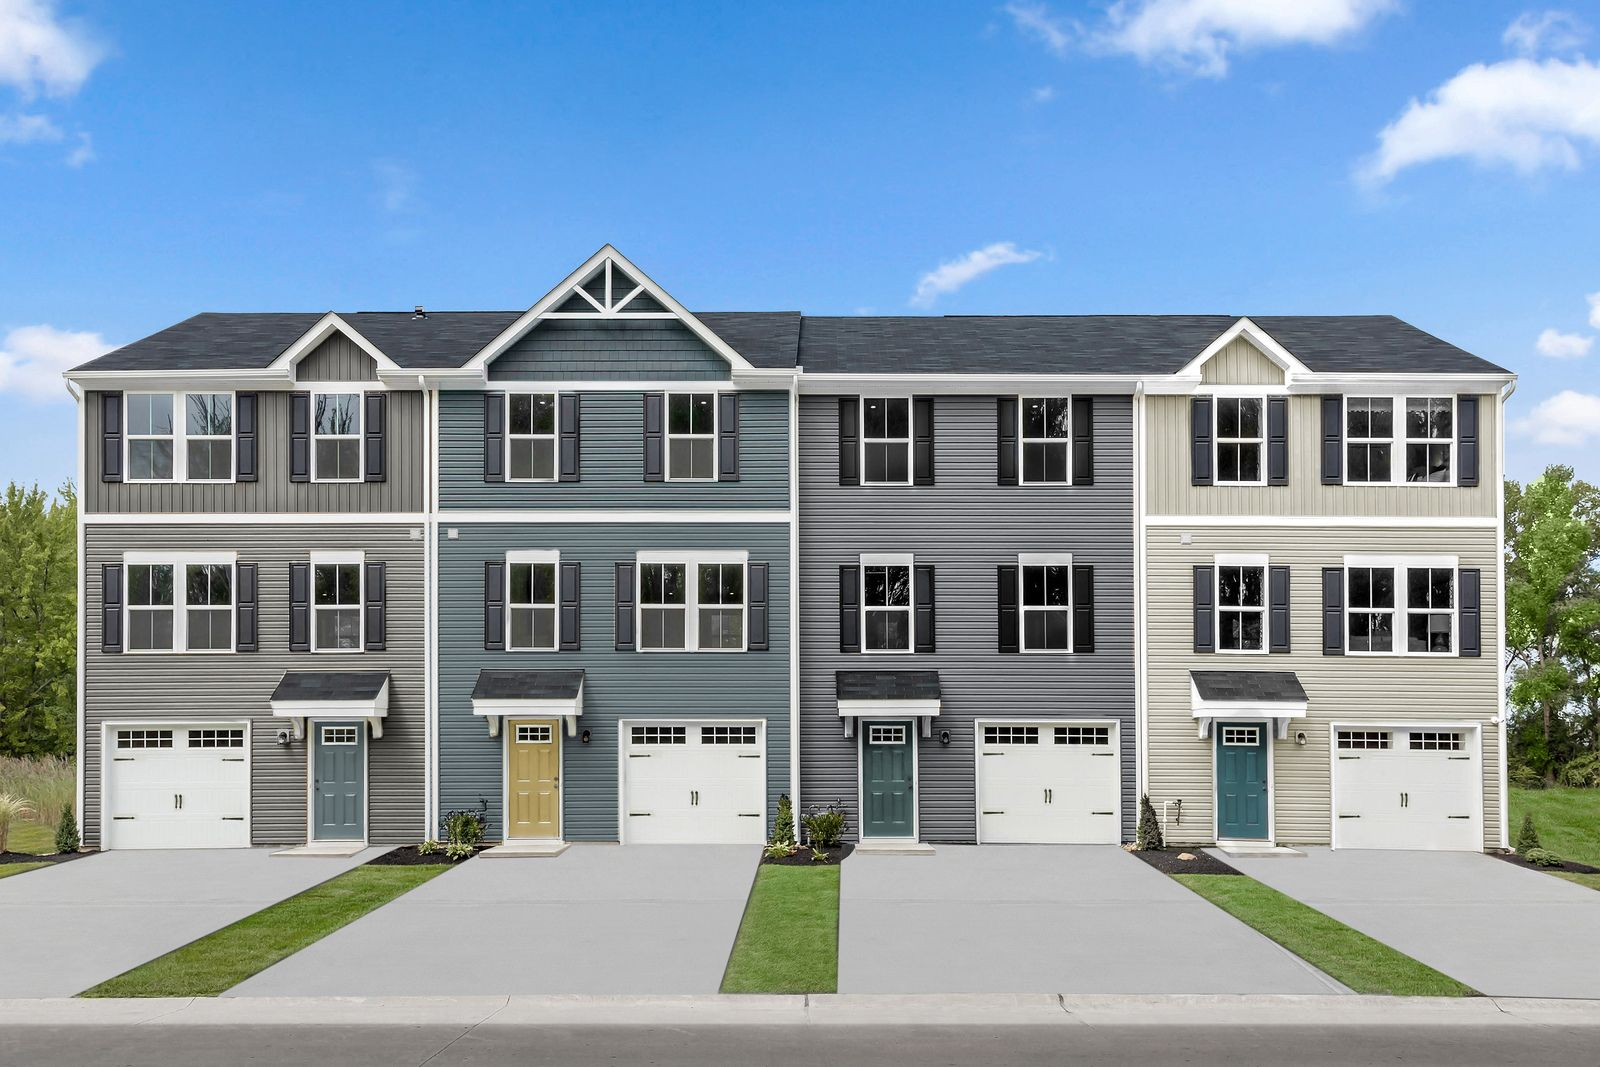 The area's lowest-priced townhomes where you can own for the same or less than rent.:Located in the heart of Easley and 2 mins. to Hwy. 123. Interested?Schedule a visit with us today!